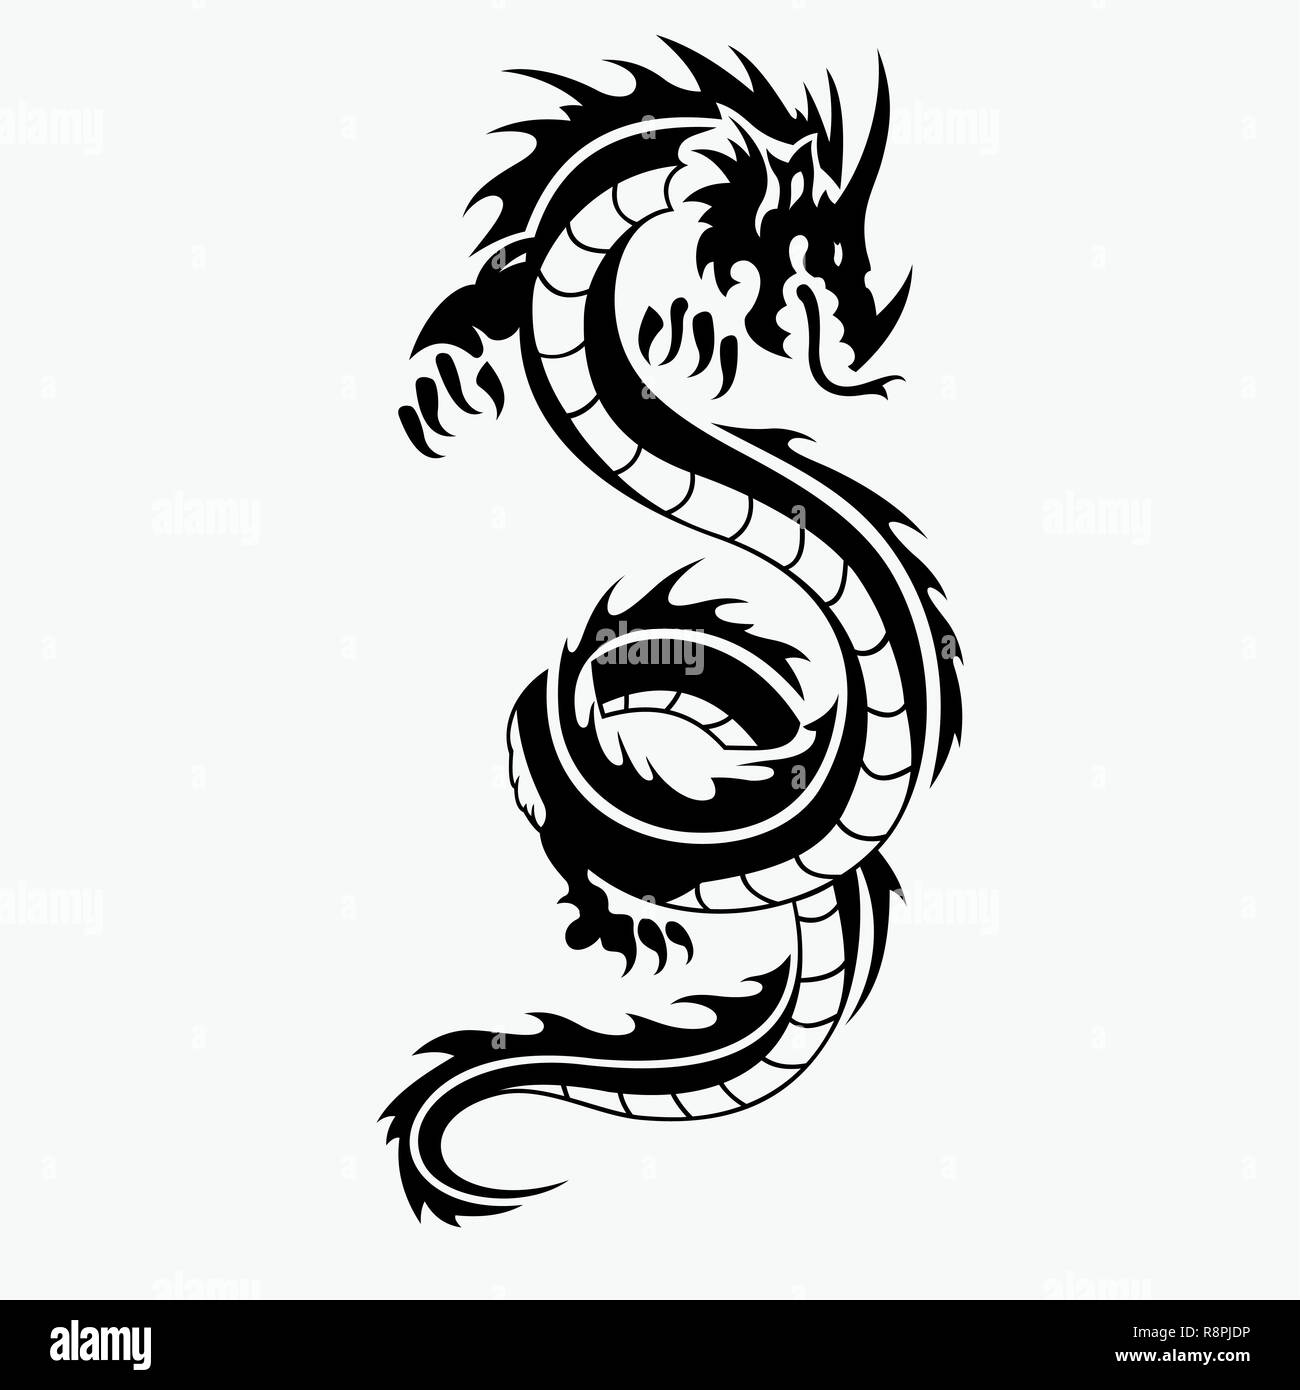 14d74c7ed Dragon vector illustration for tattoo designs, logos, icons, symbols,  t-shirt